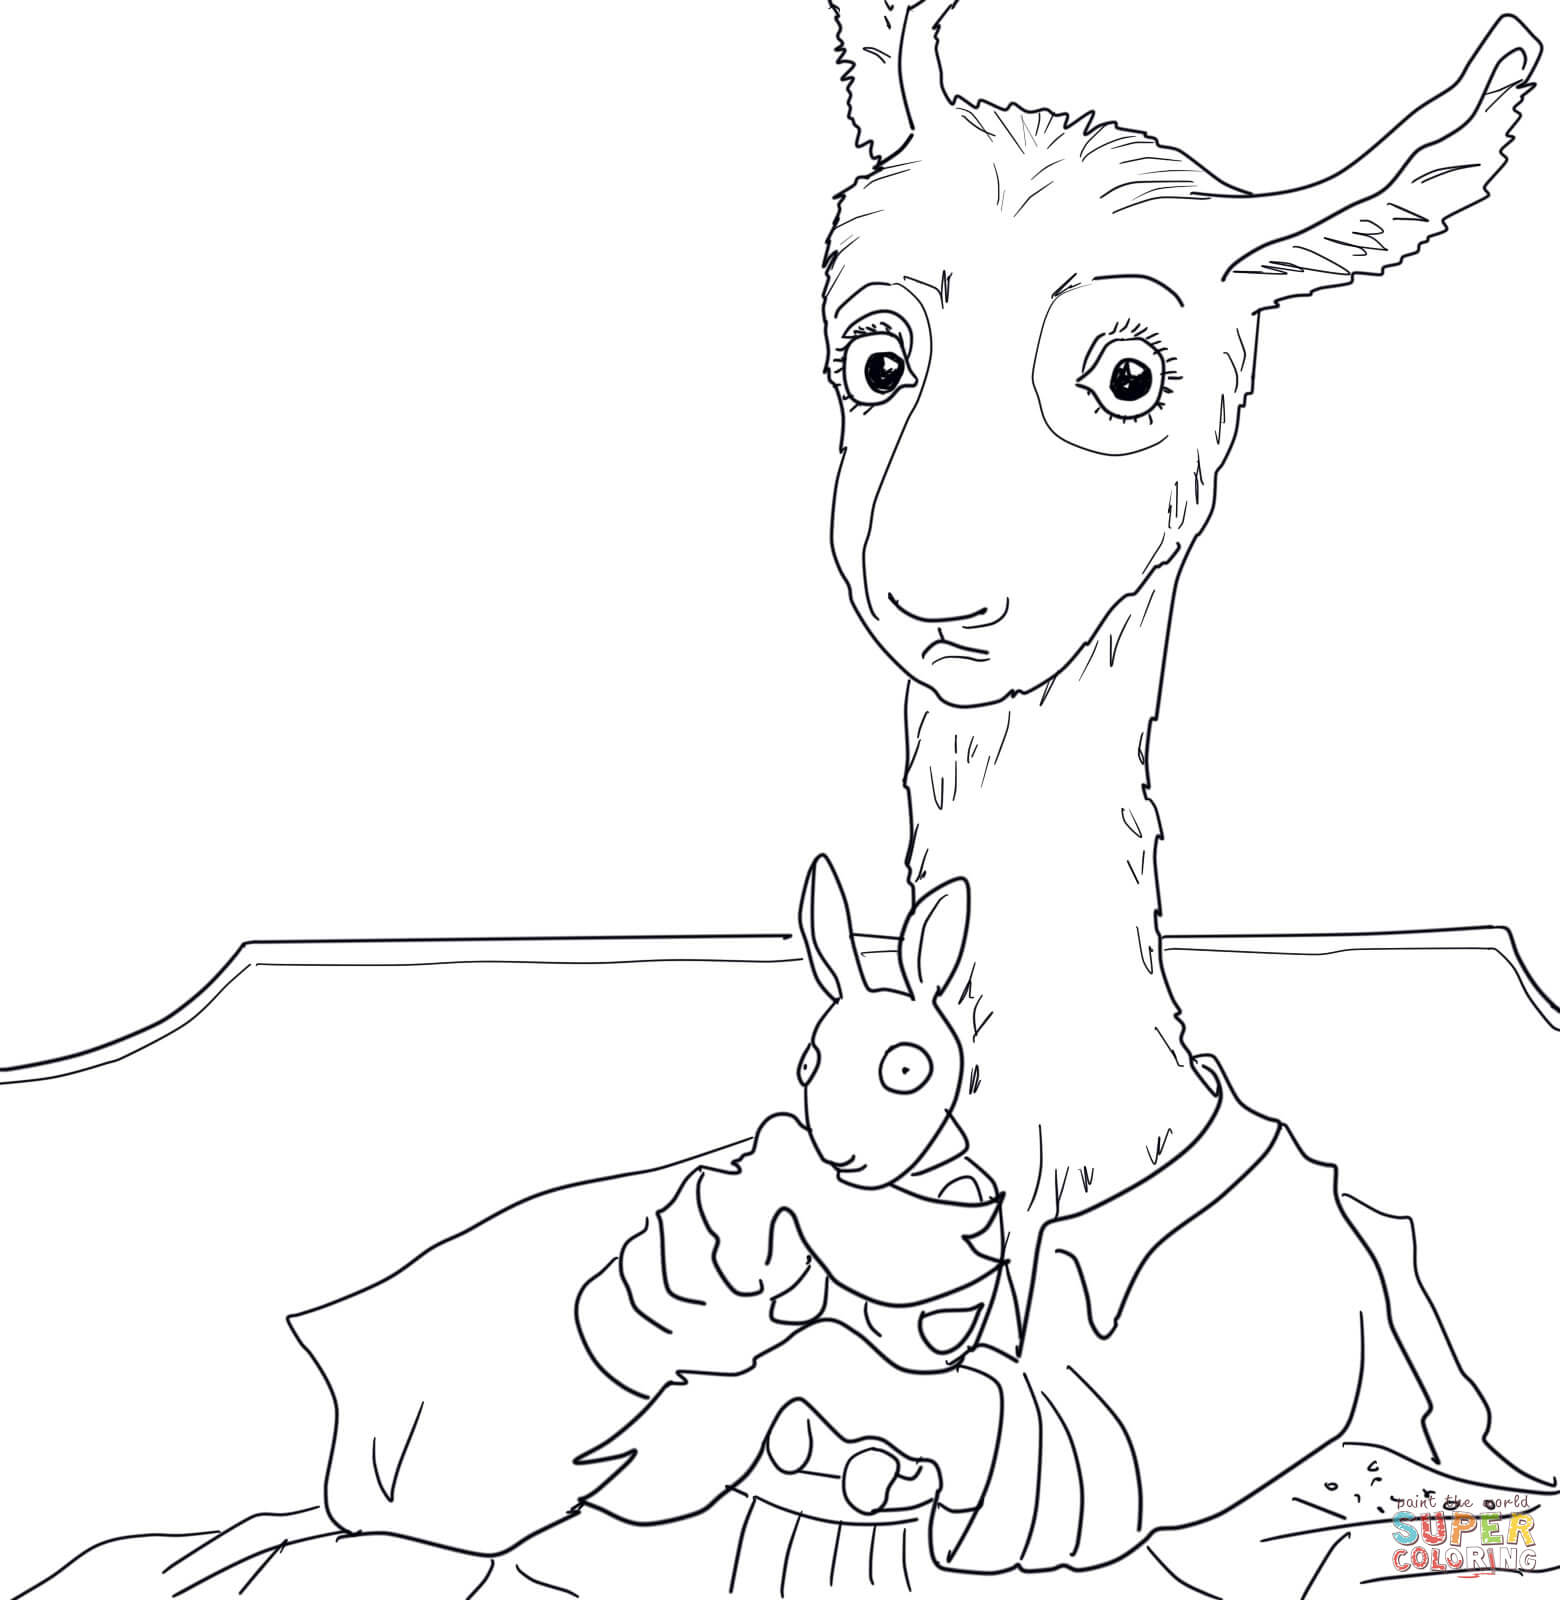 Llama Llama Red Pajama coloring page | Free Printable Coloring Pages